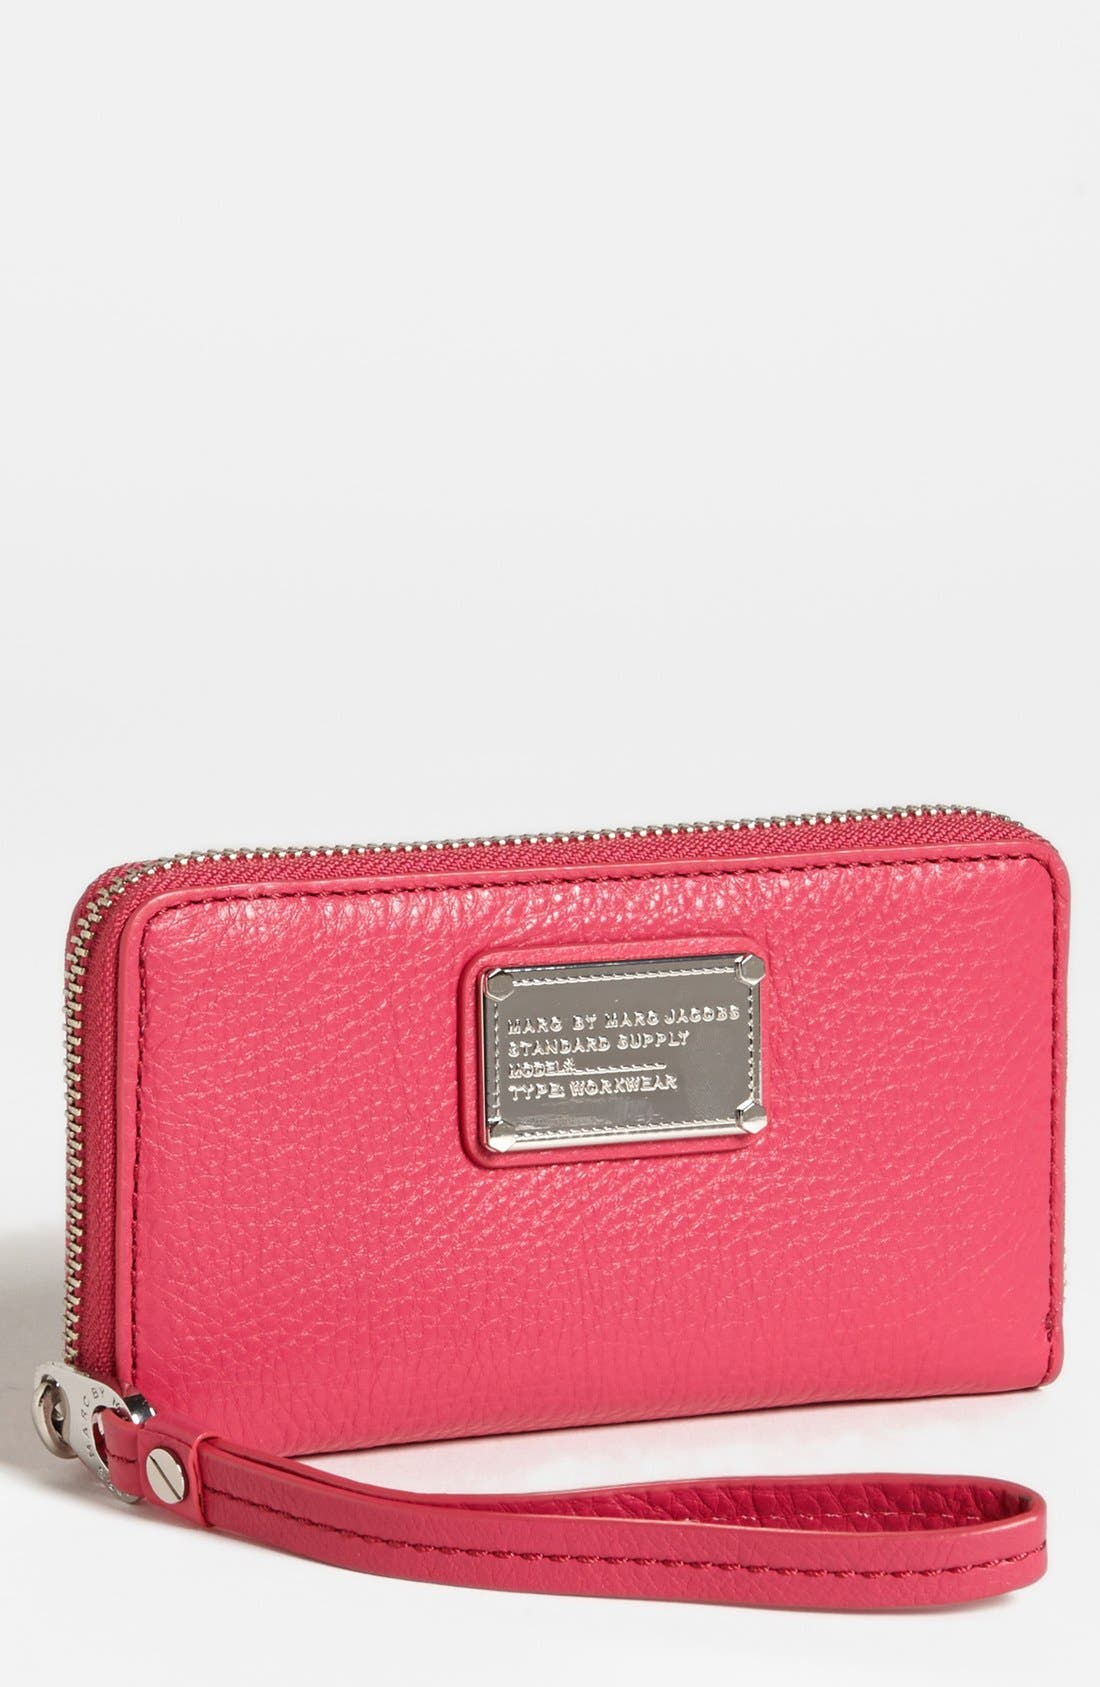 Alternate Image 1 Selected - MARC BY MARC JACOBS 'Classic Q - Wingman' iPhone 5 & 5S Wristlet